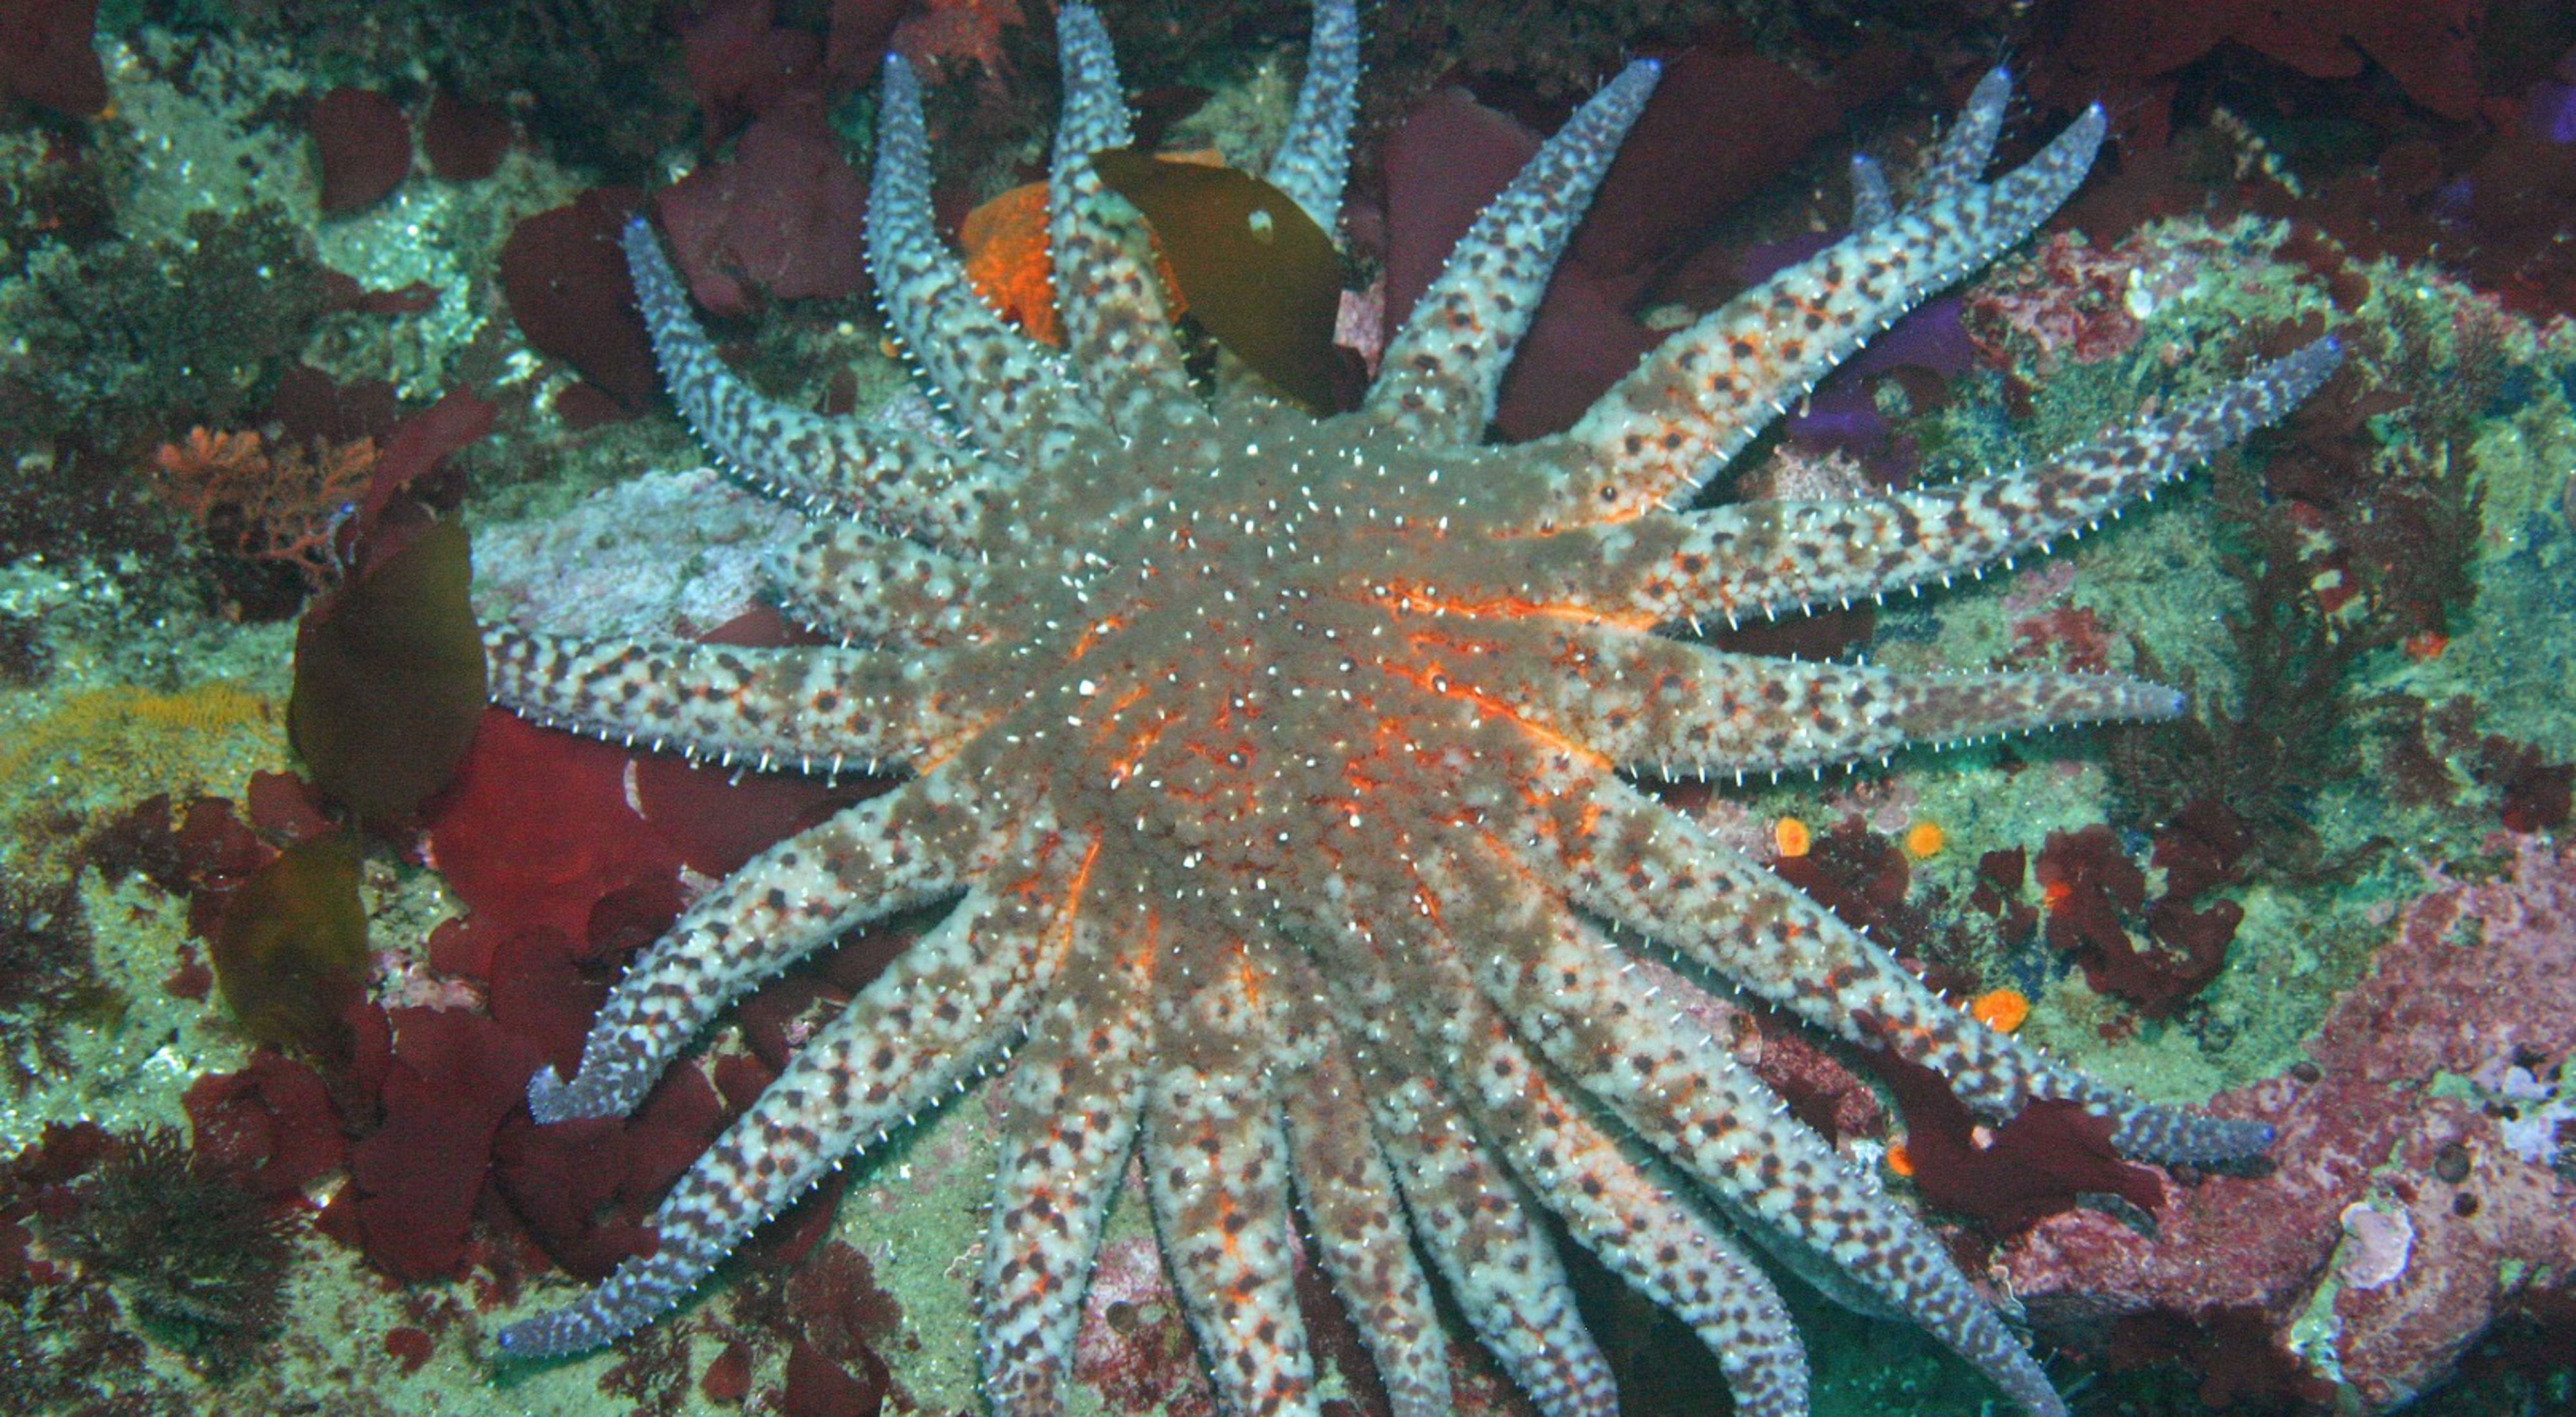 A sunflower star: a blue and brown mottled sea star with about twenty arms and short white spikes on its arms and body.